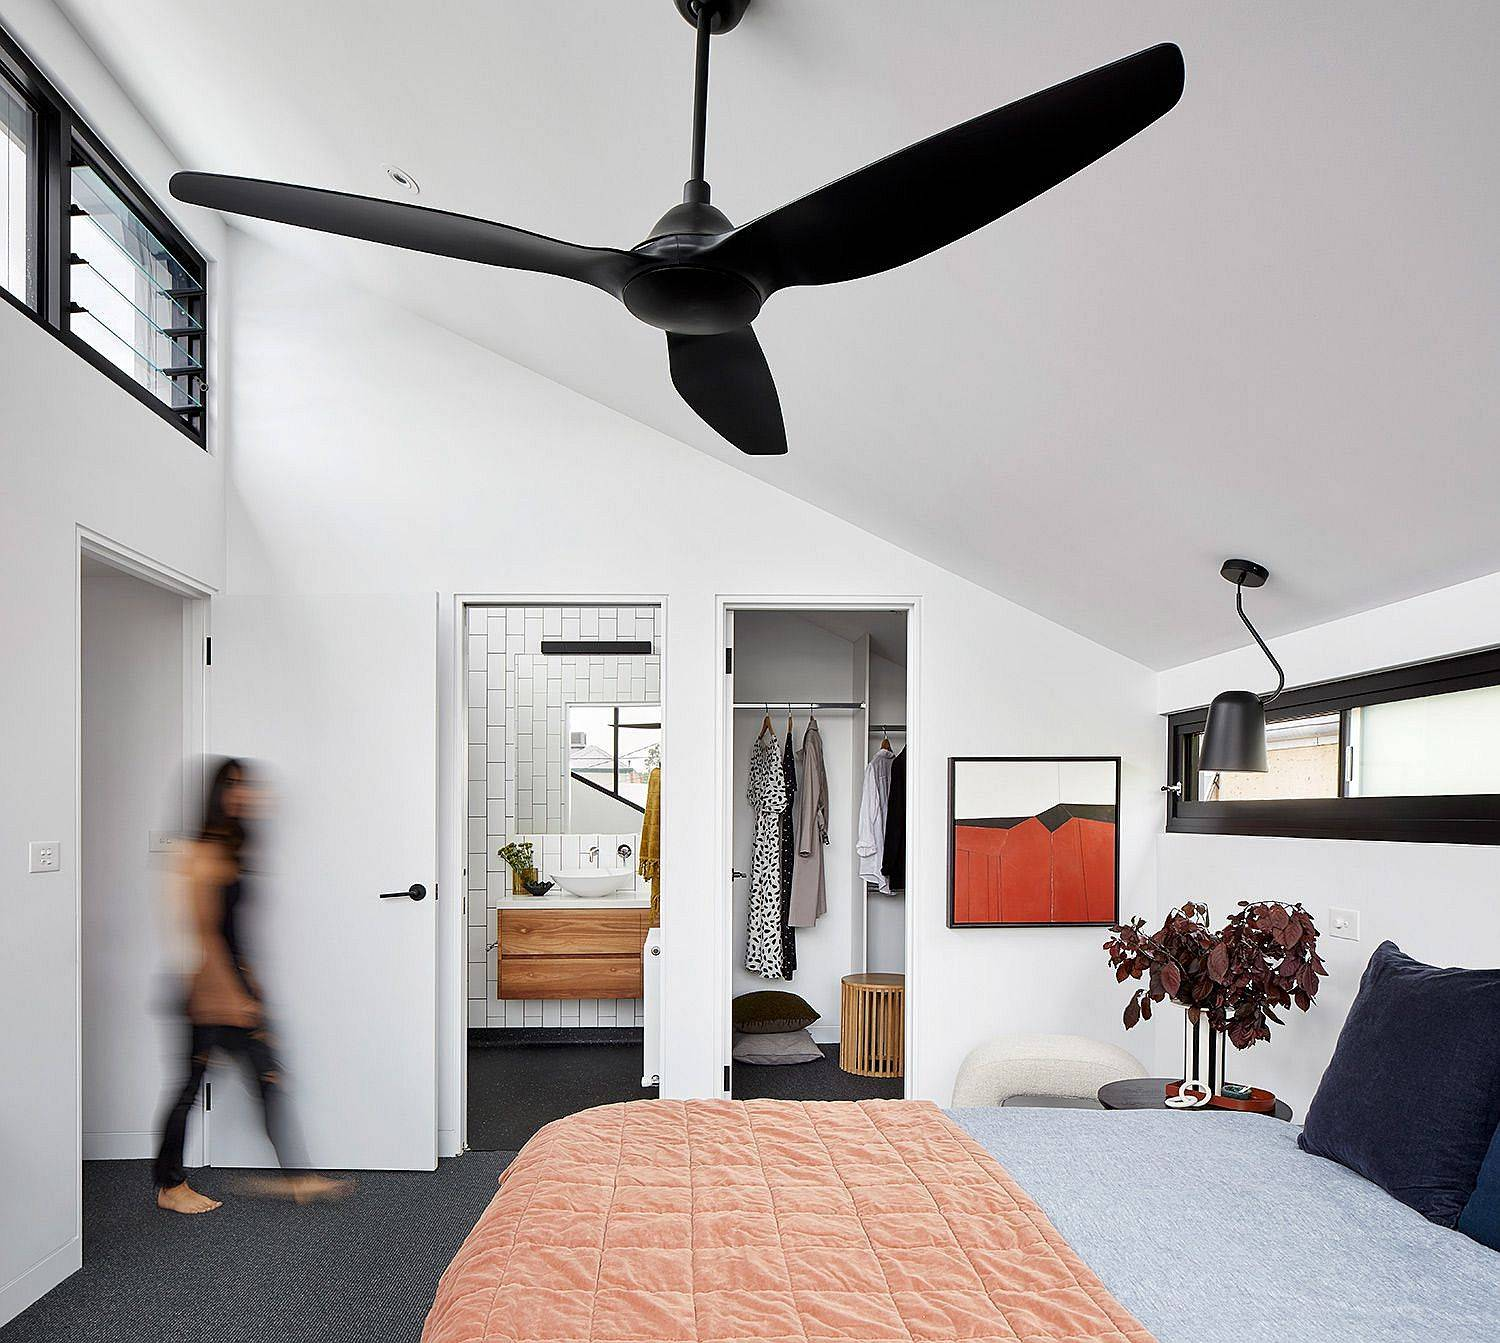 Master-bedroom-along-with-two-other-bedrooms-were-added-to-the-new-extension-99930